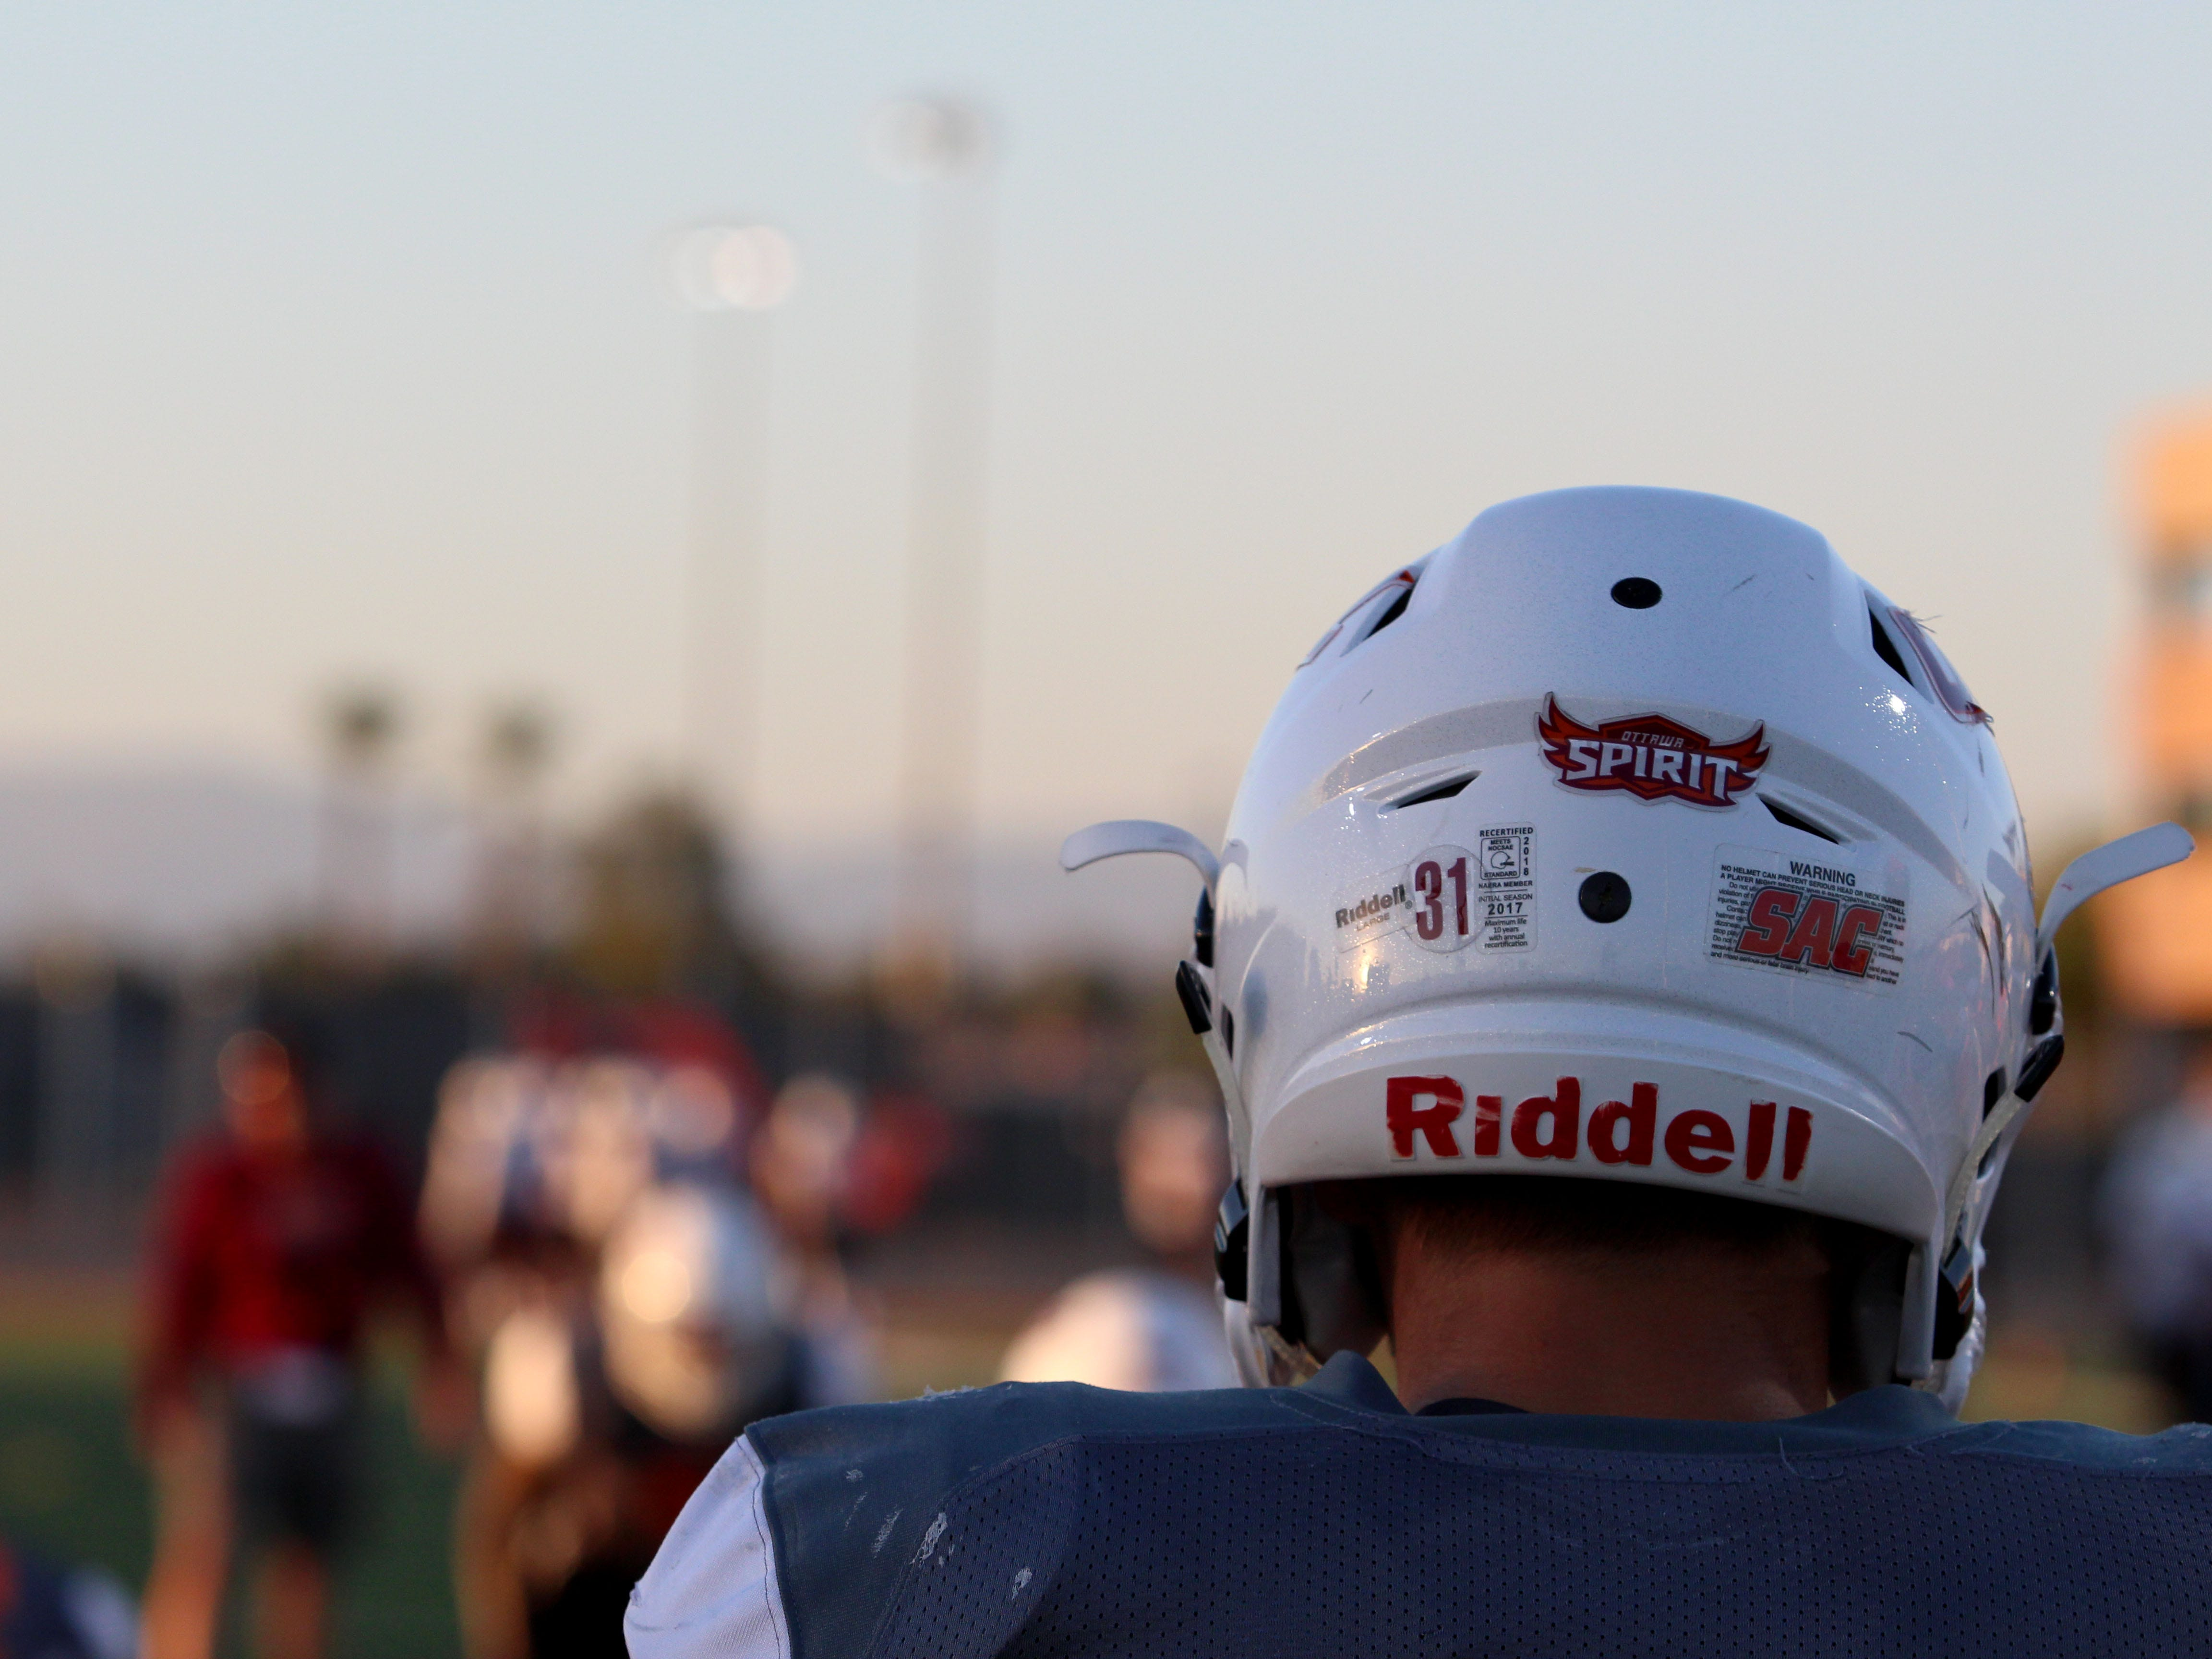 OUAZ players watch on in the end zone as a practice goes on Tuesday night in Surprise on Sept. 11, 2018.